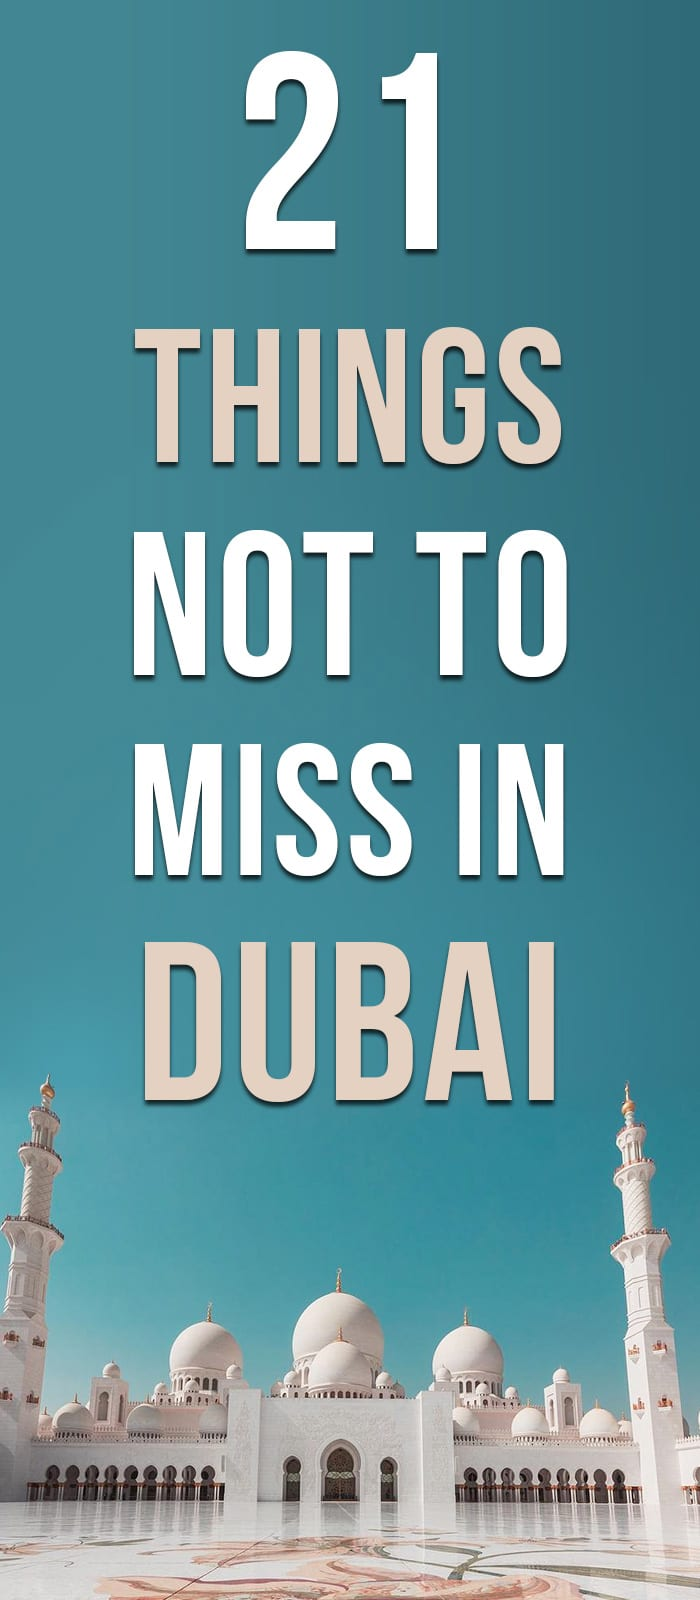 21 things not to miss in Dubai